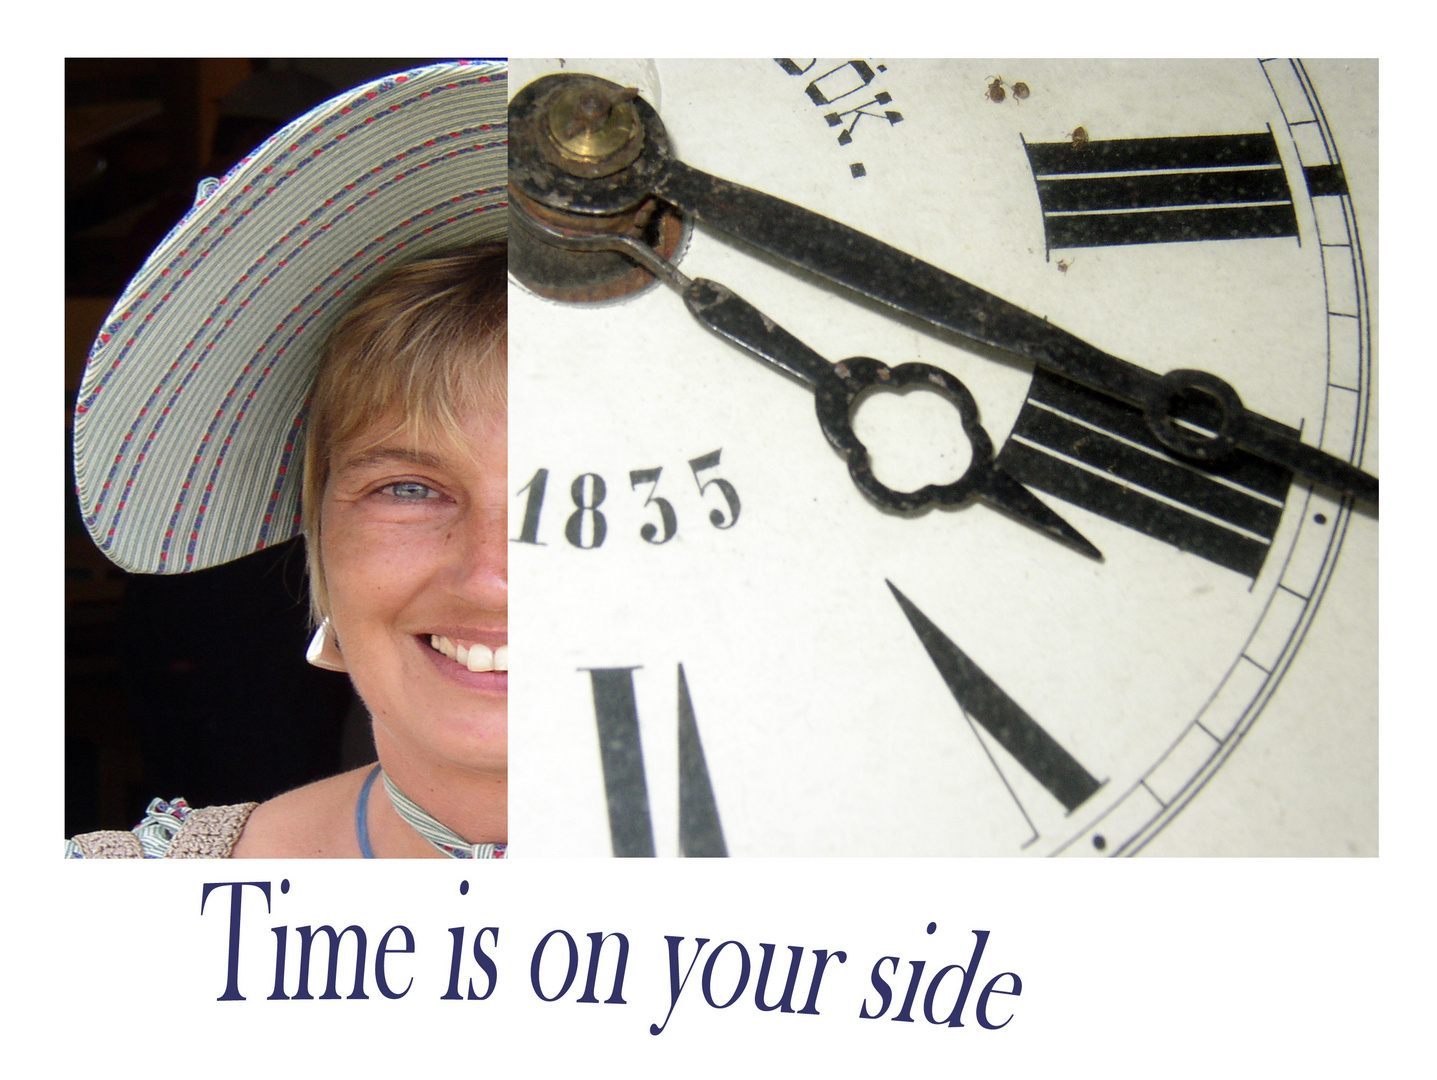 Time in on your side